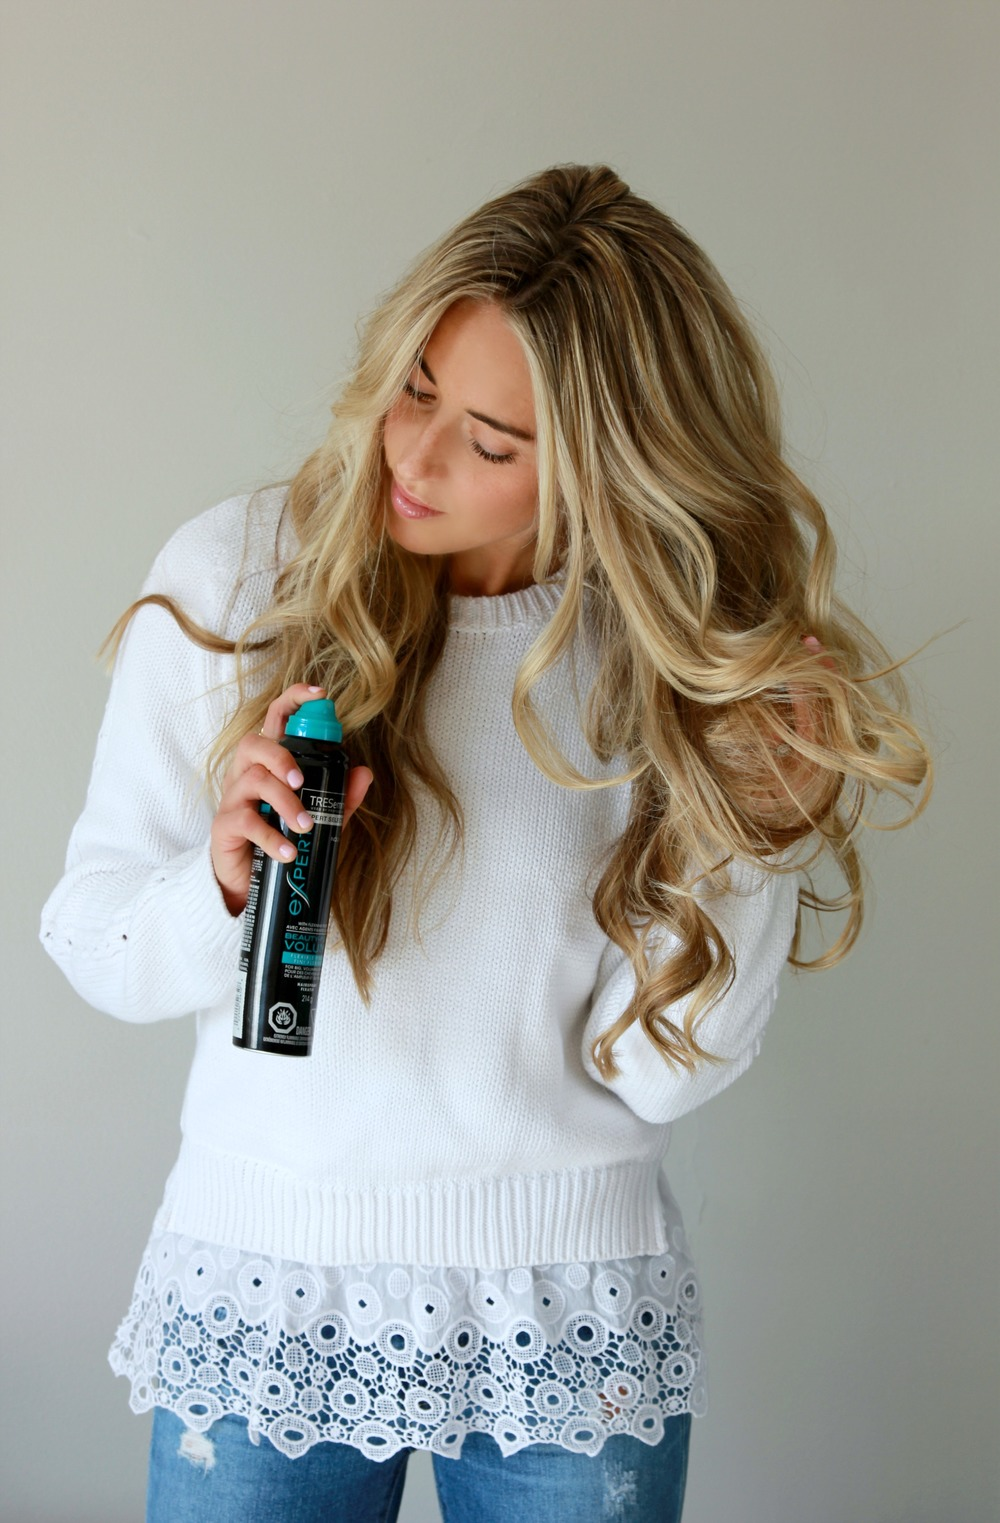 New  TRESemmé  Beauty Full-Volume Reverse Wash System: Condition First, Shampoo Second.;Styling Products Mousse & Hairspray  Colour done by Sarah Braim of  The House of Blonde , Hair Curled with  XO Styling Iron